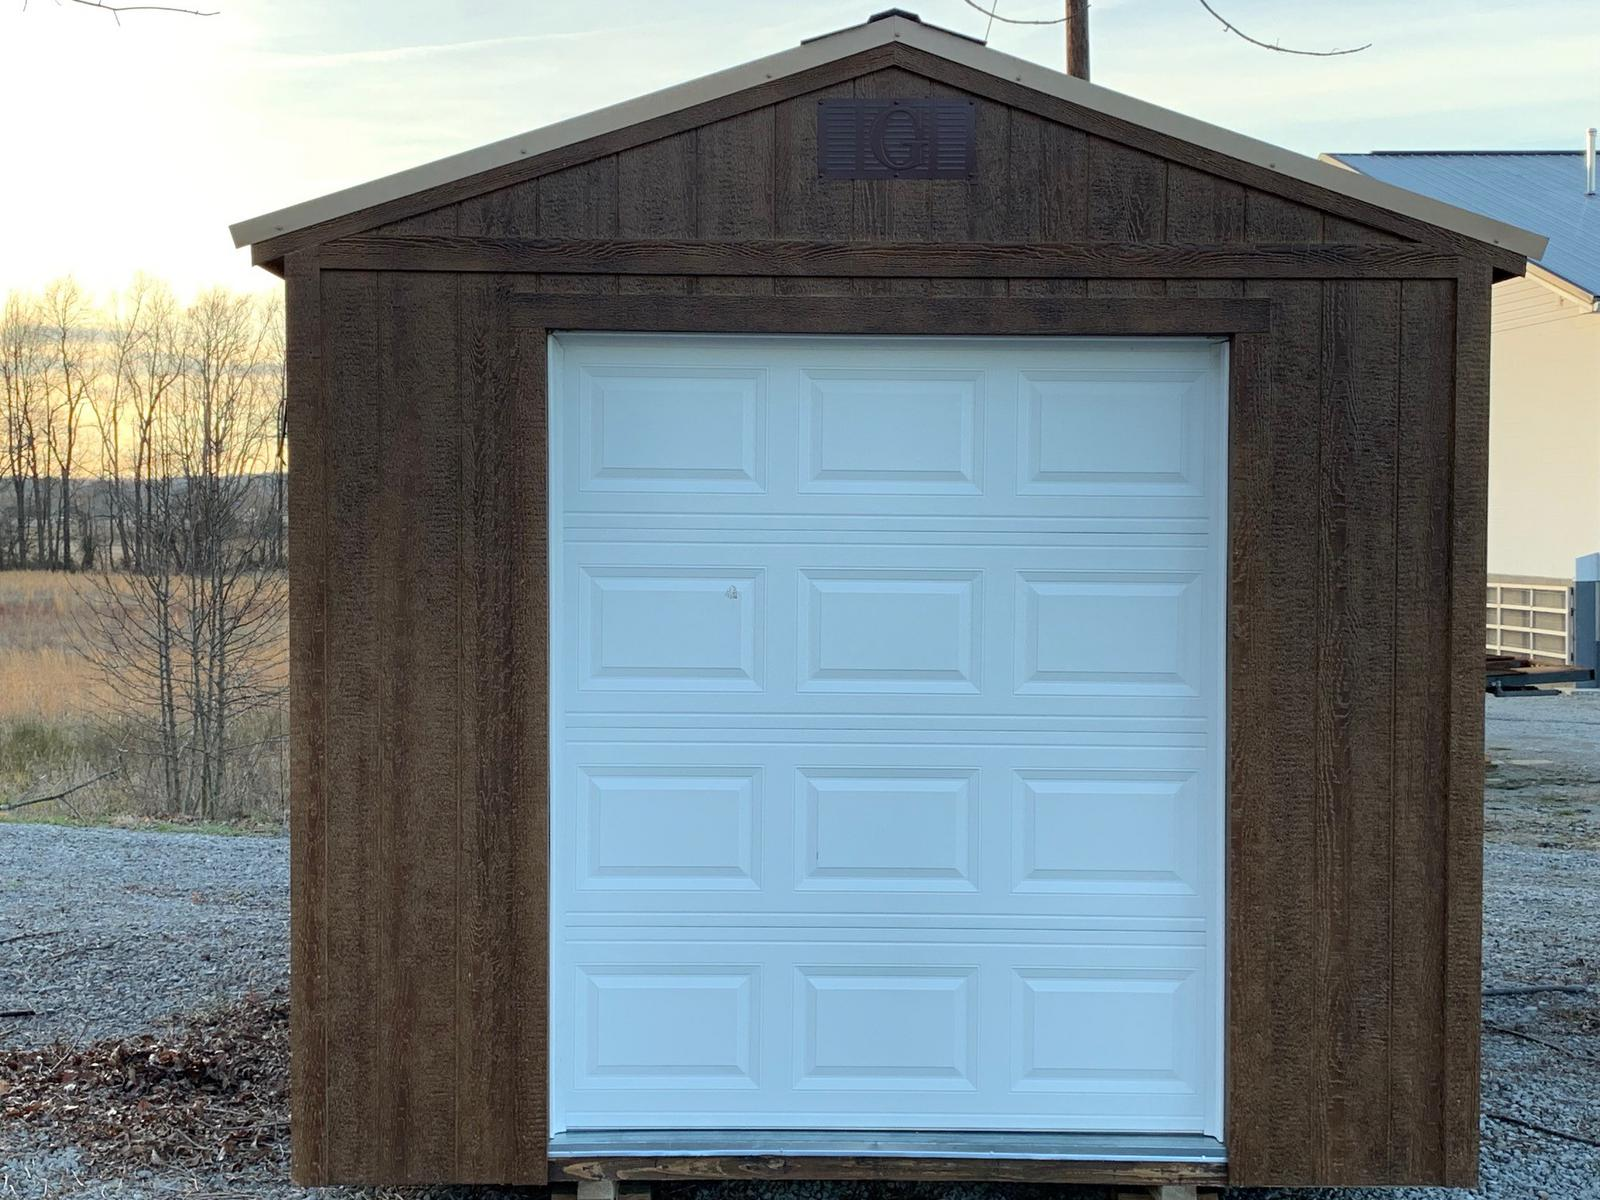 Garage Storage Buildings Express Storage Buildings Portable Garage 118 Month Sale 15